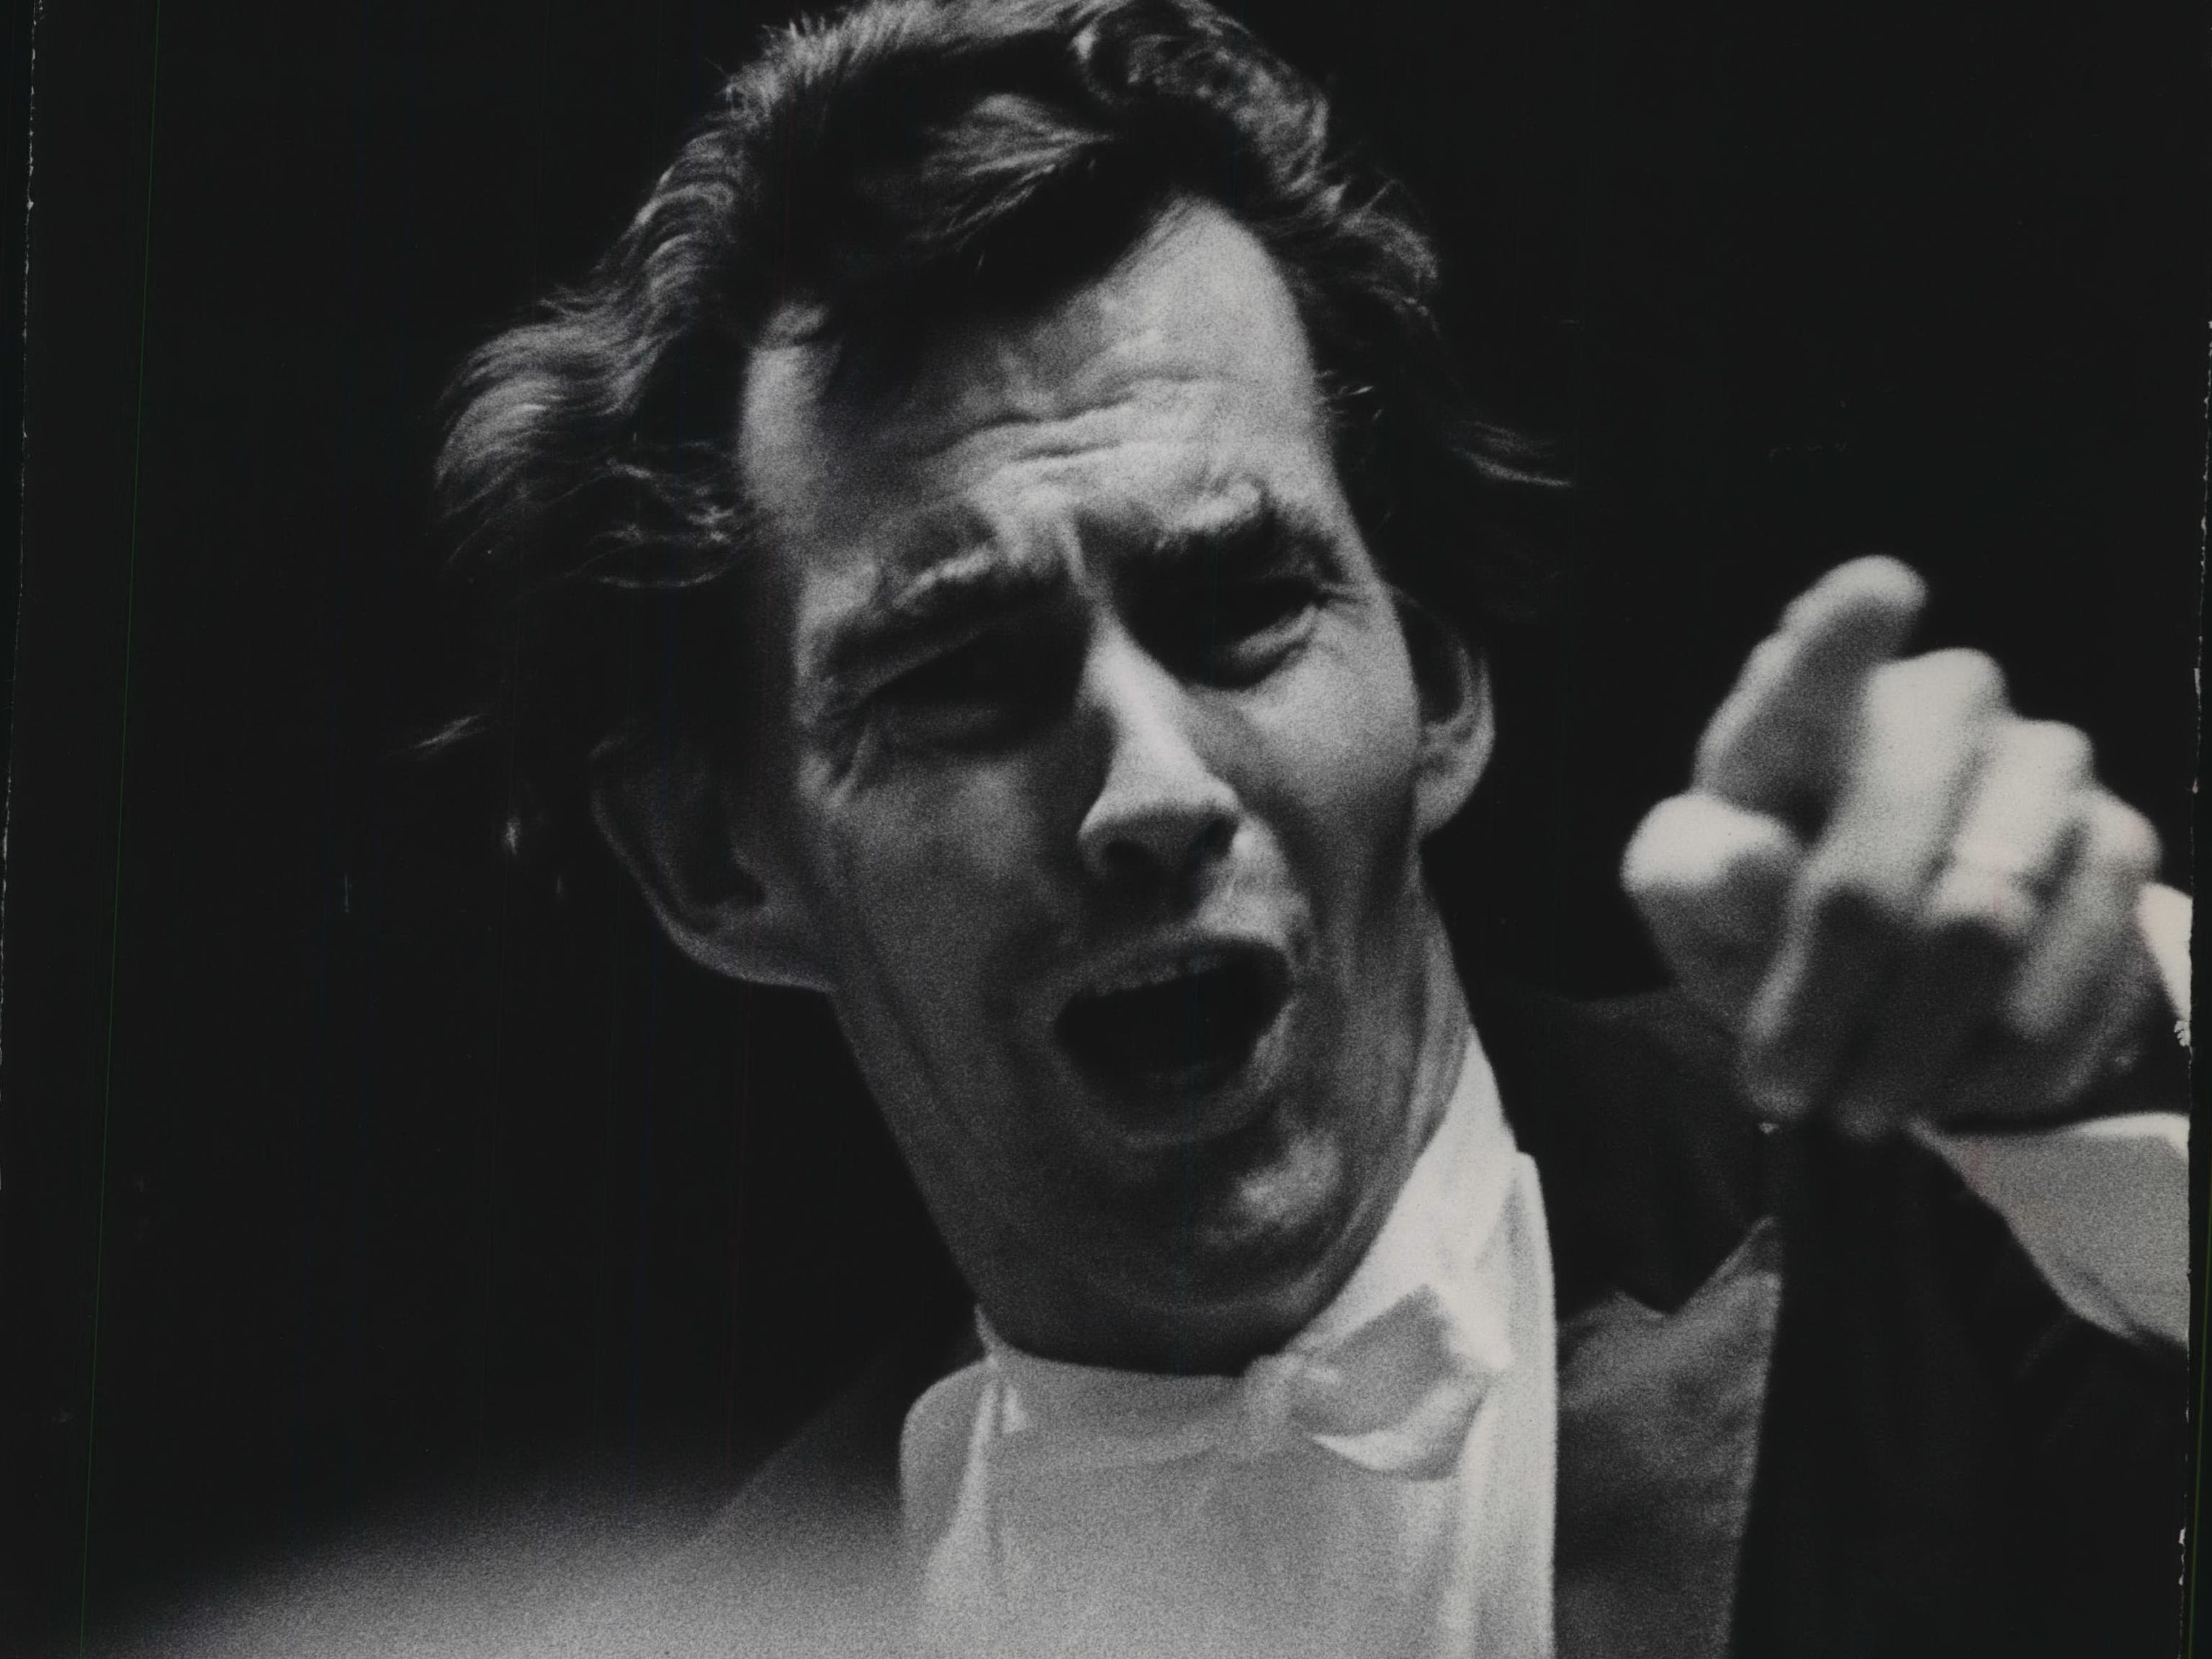 Kenneth Schermerhorn conducts the Milwaukee Symphony Orchestra in the opening night of the symphony's 1968-'69 season on Sept. 28, 1968. It also was Schermerhorn's formal debut as the MSO's chief conductor and music director. This photo was published in the Sept. 30, 1968, Milwaukee Journal.